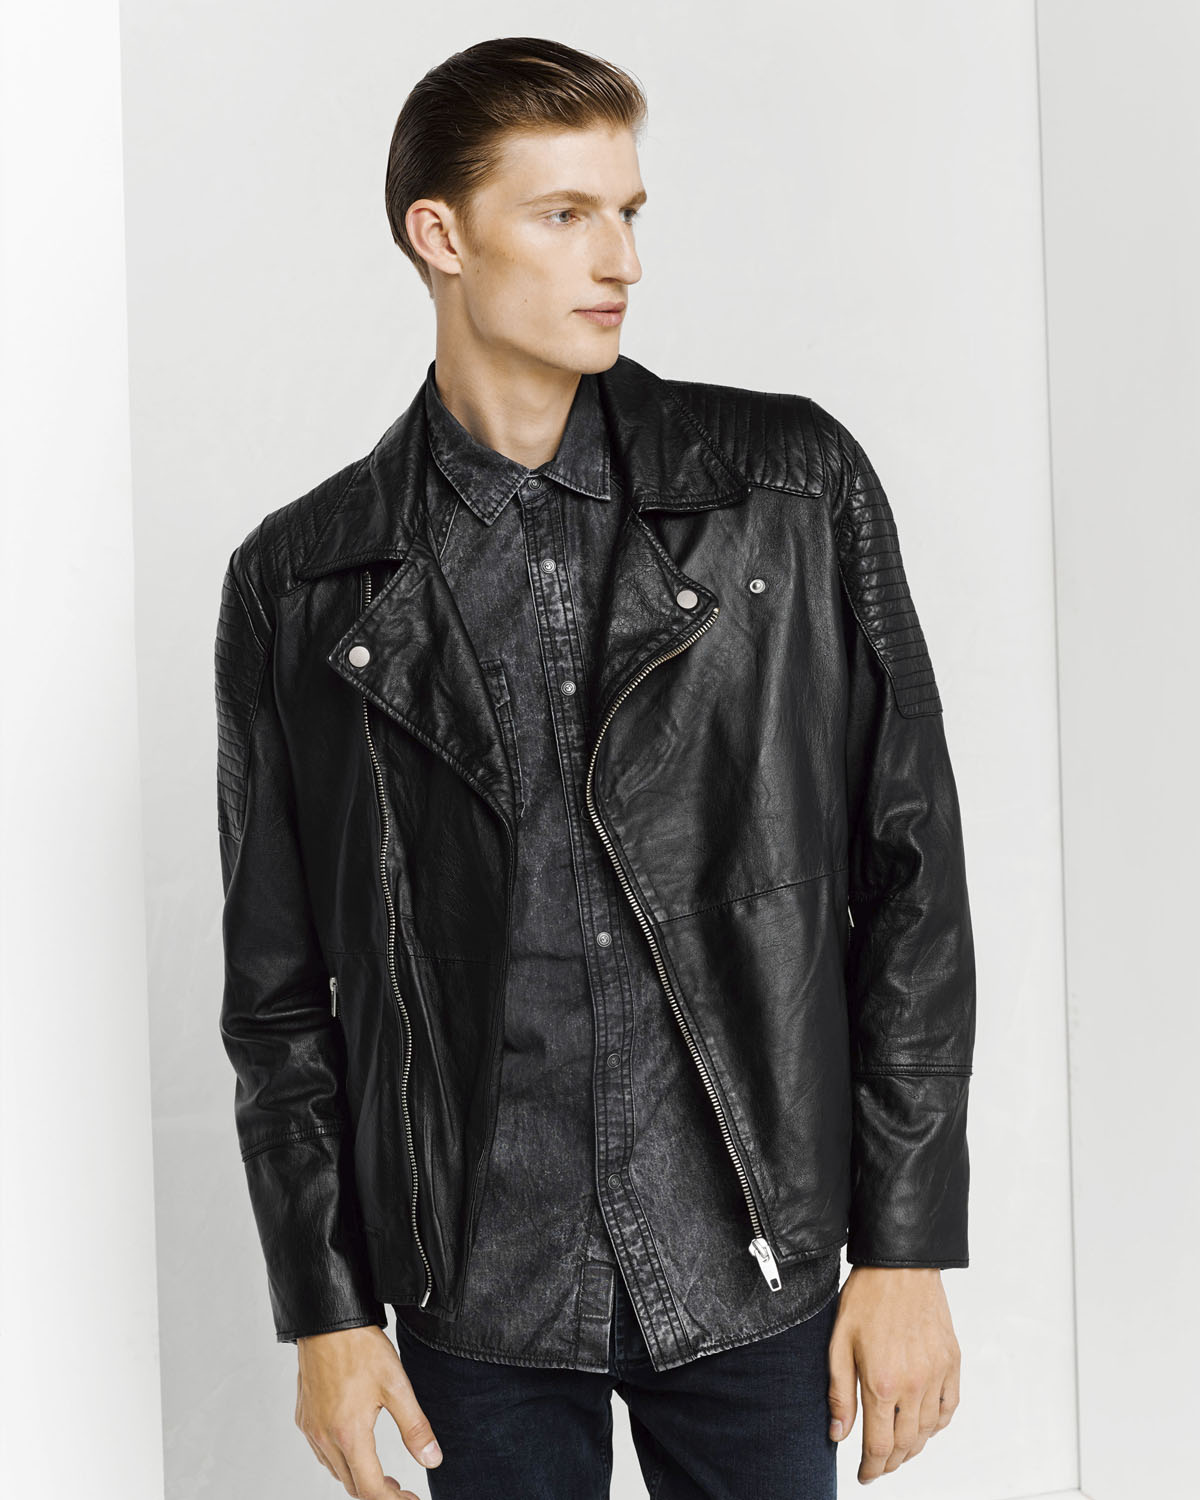 Herren Lederjacke | 94489484 WE Fashion